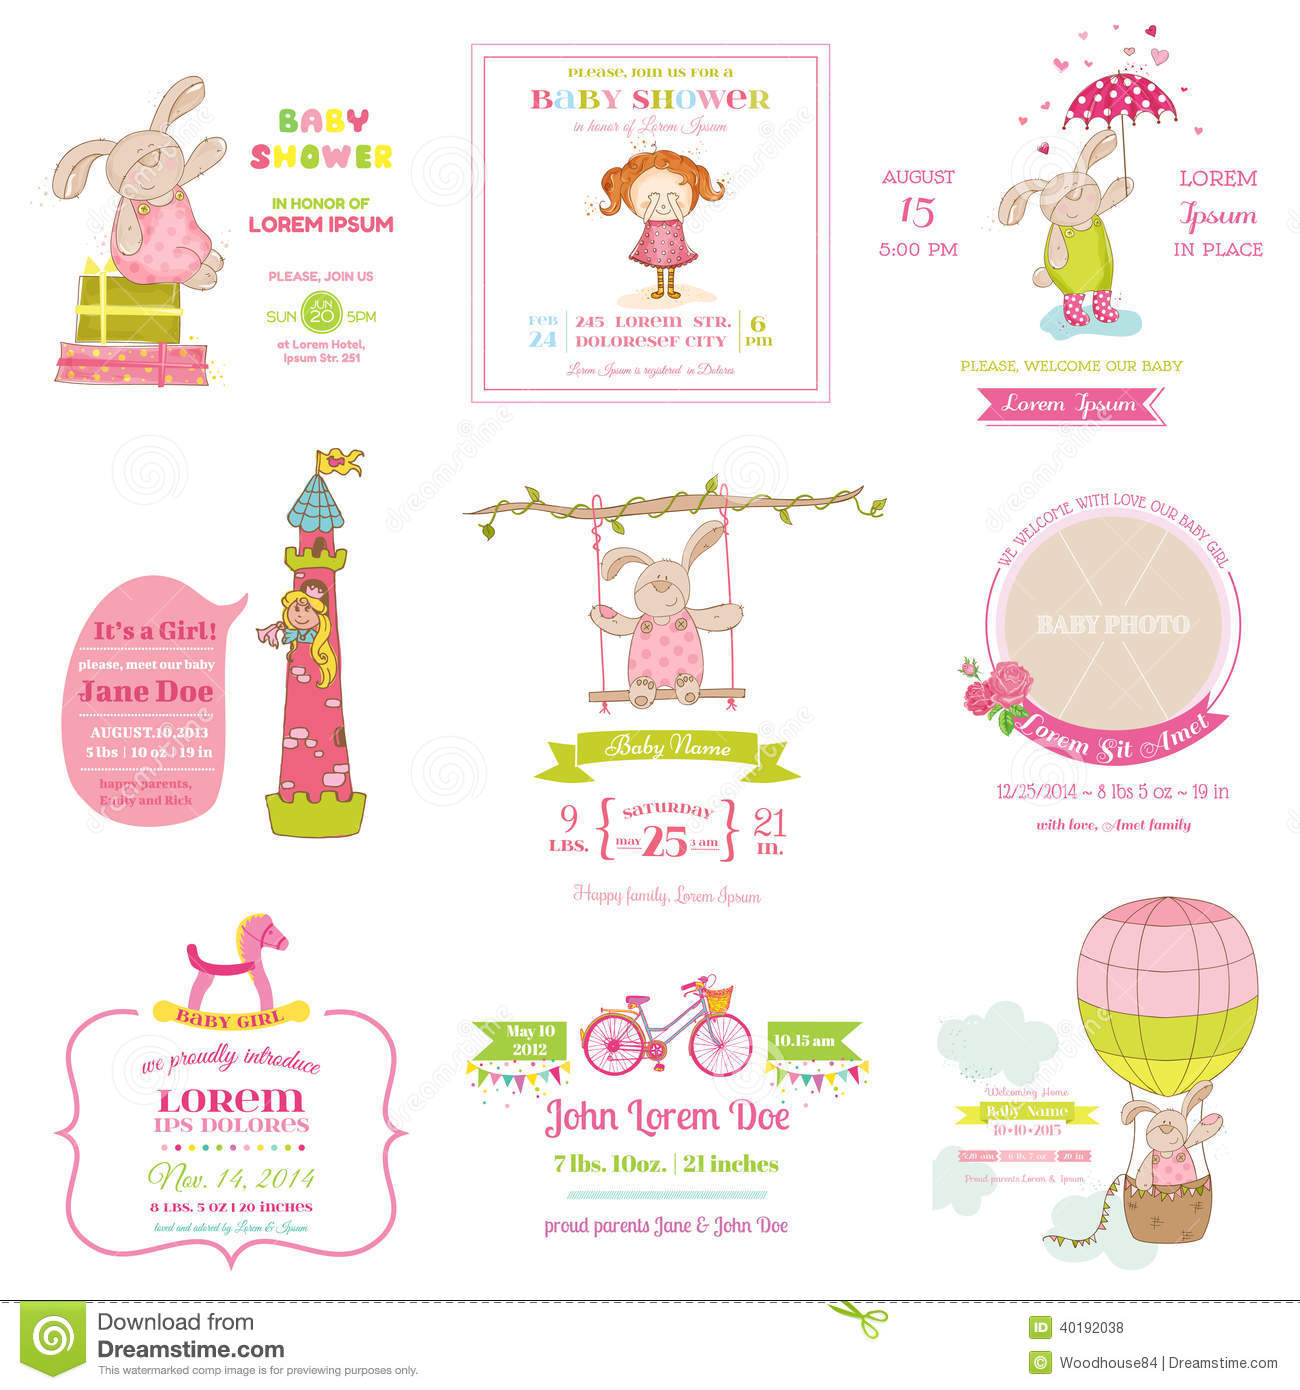 Baby Shower Invitations Cards was beautiful invitation example